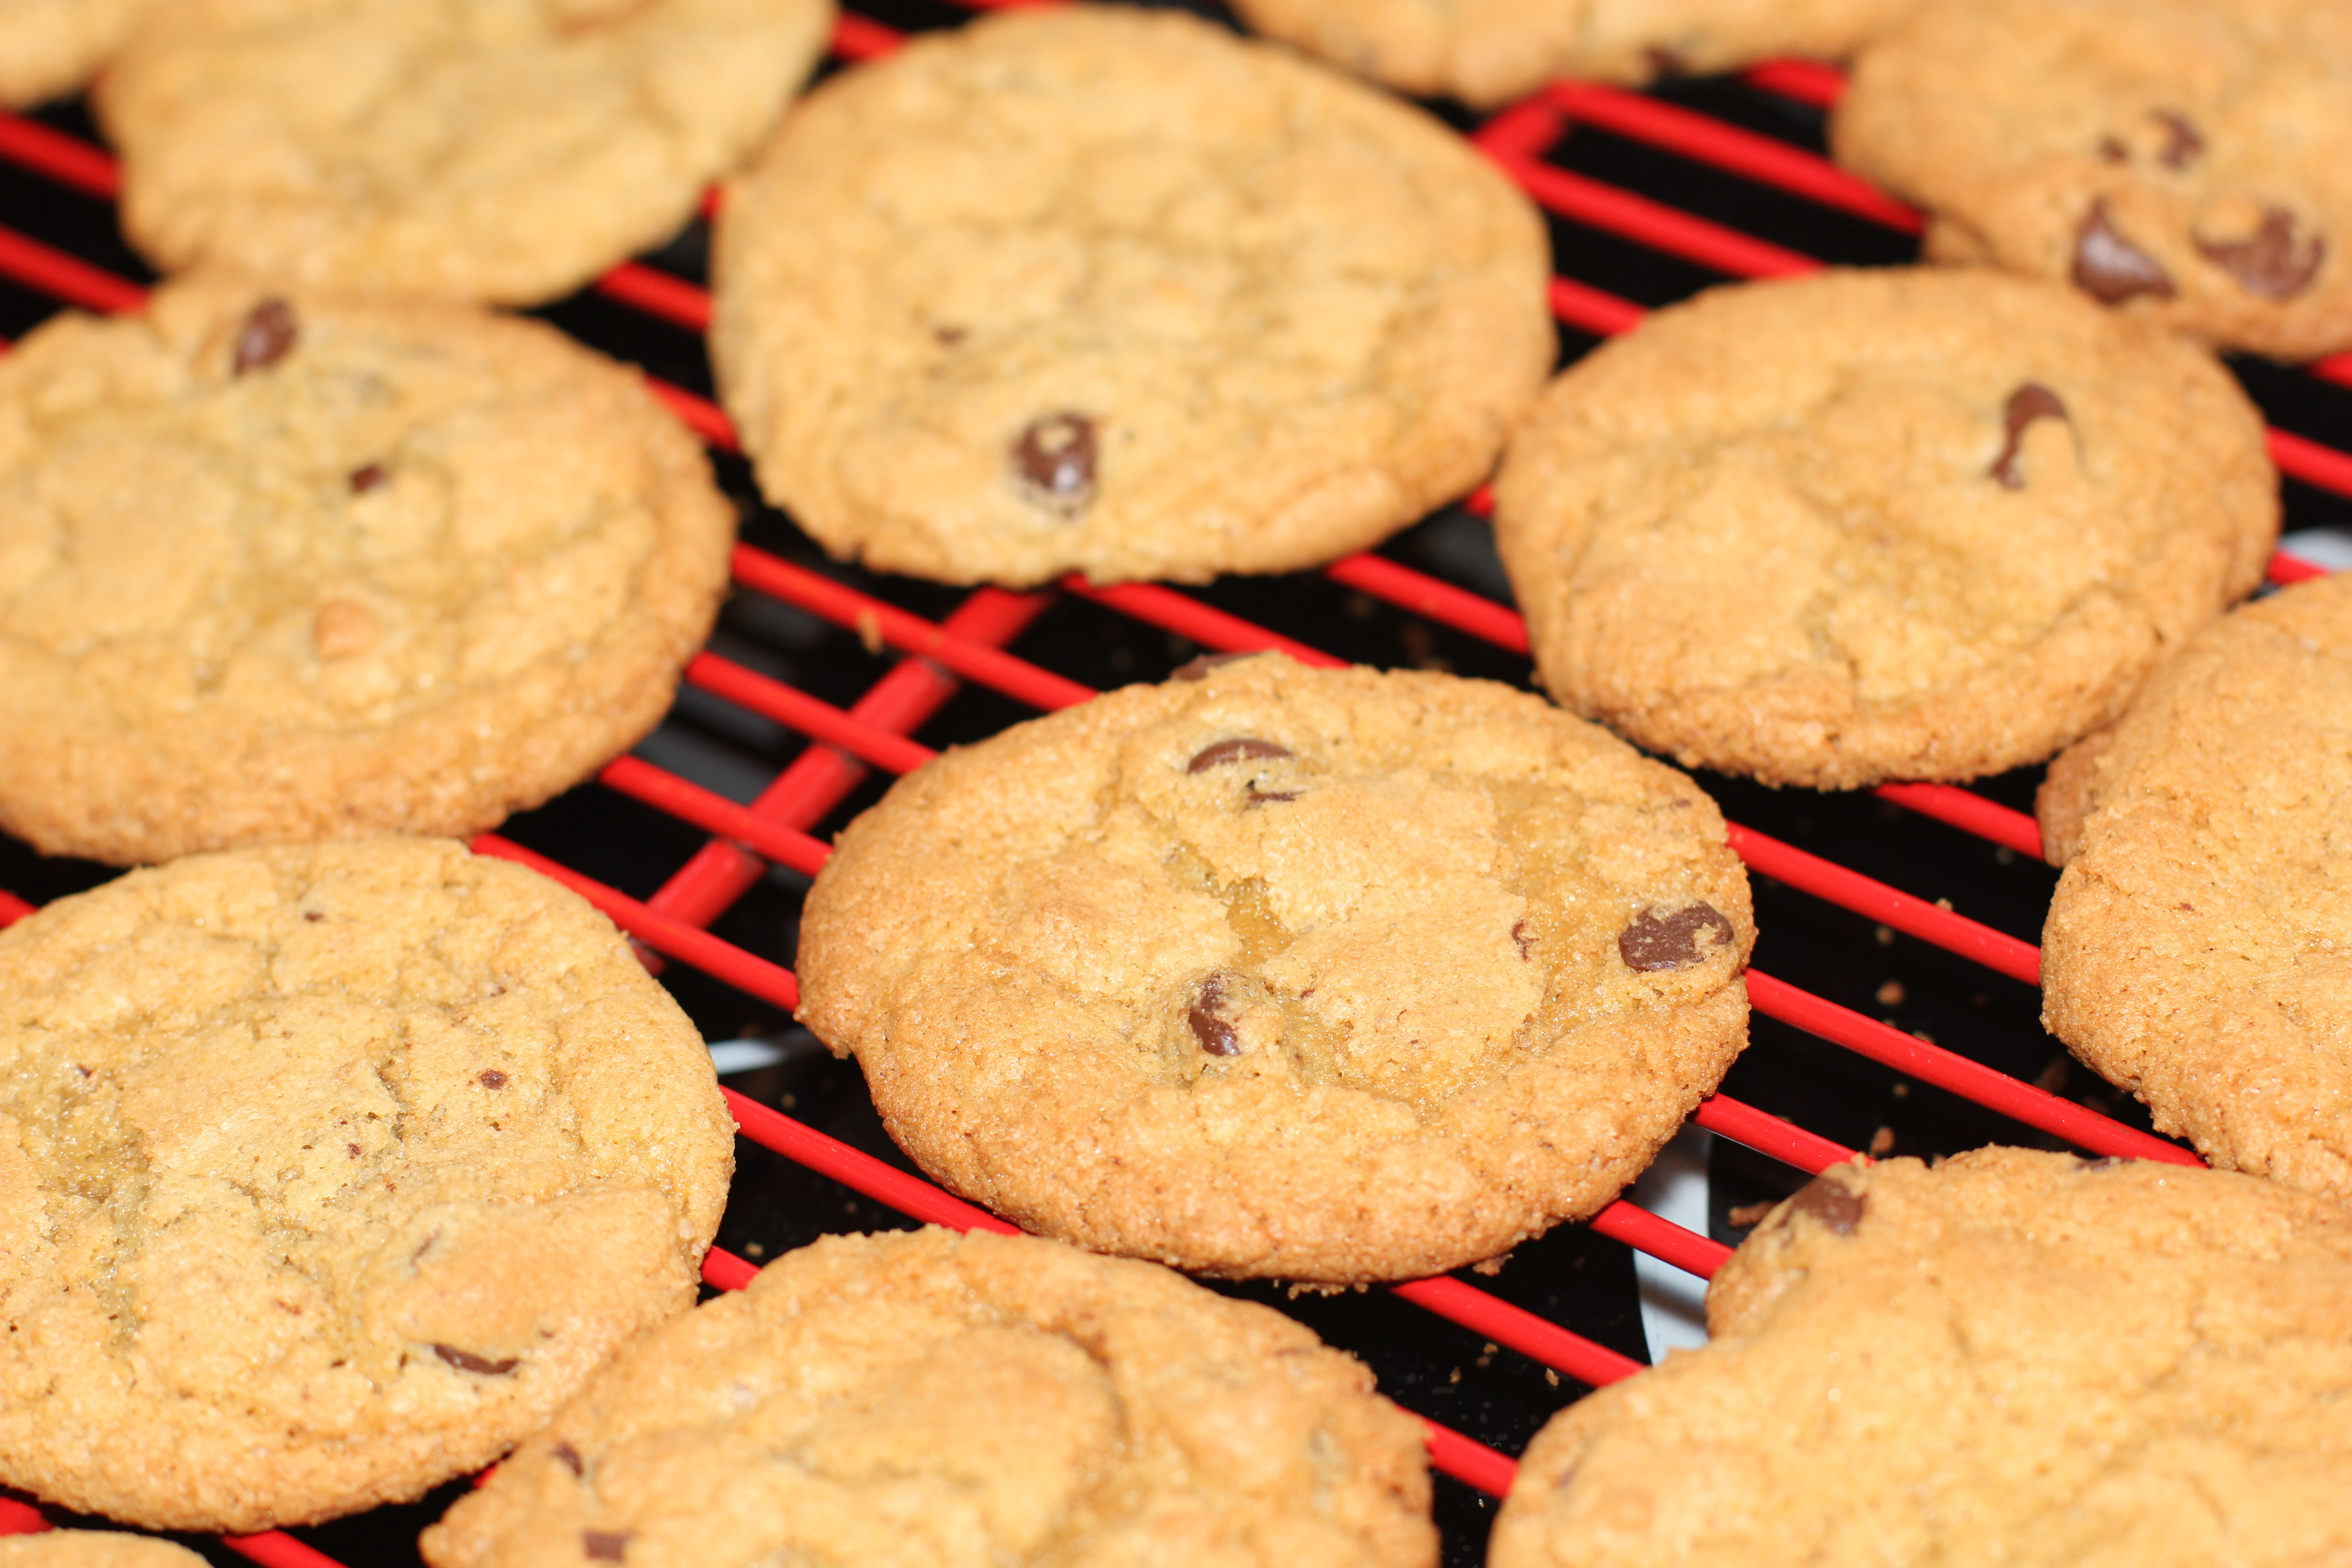 Honey Badger's Gluten-Free Chocolate Chip Cookies from Heaven